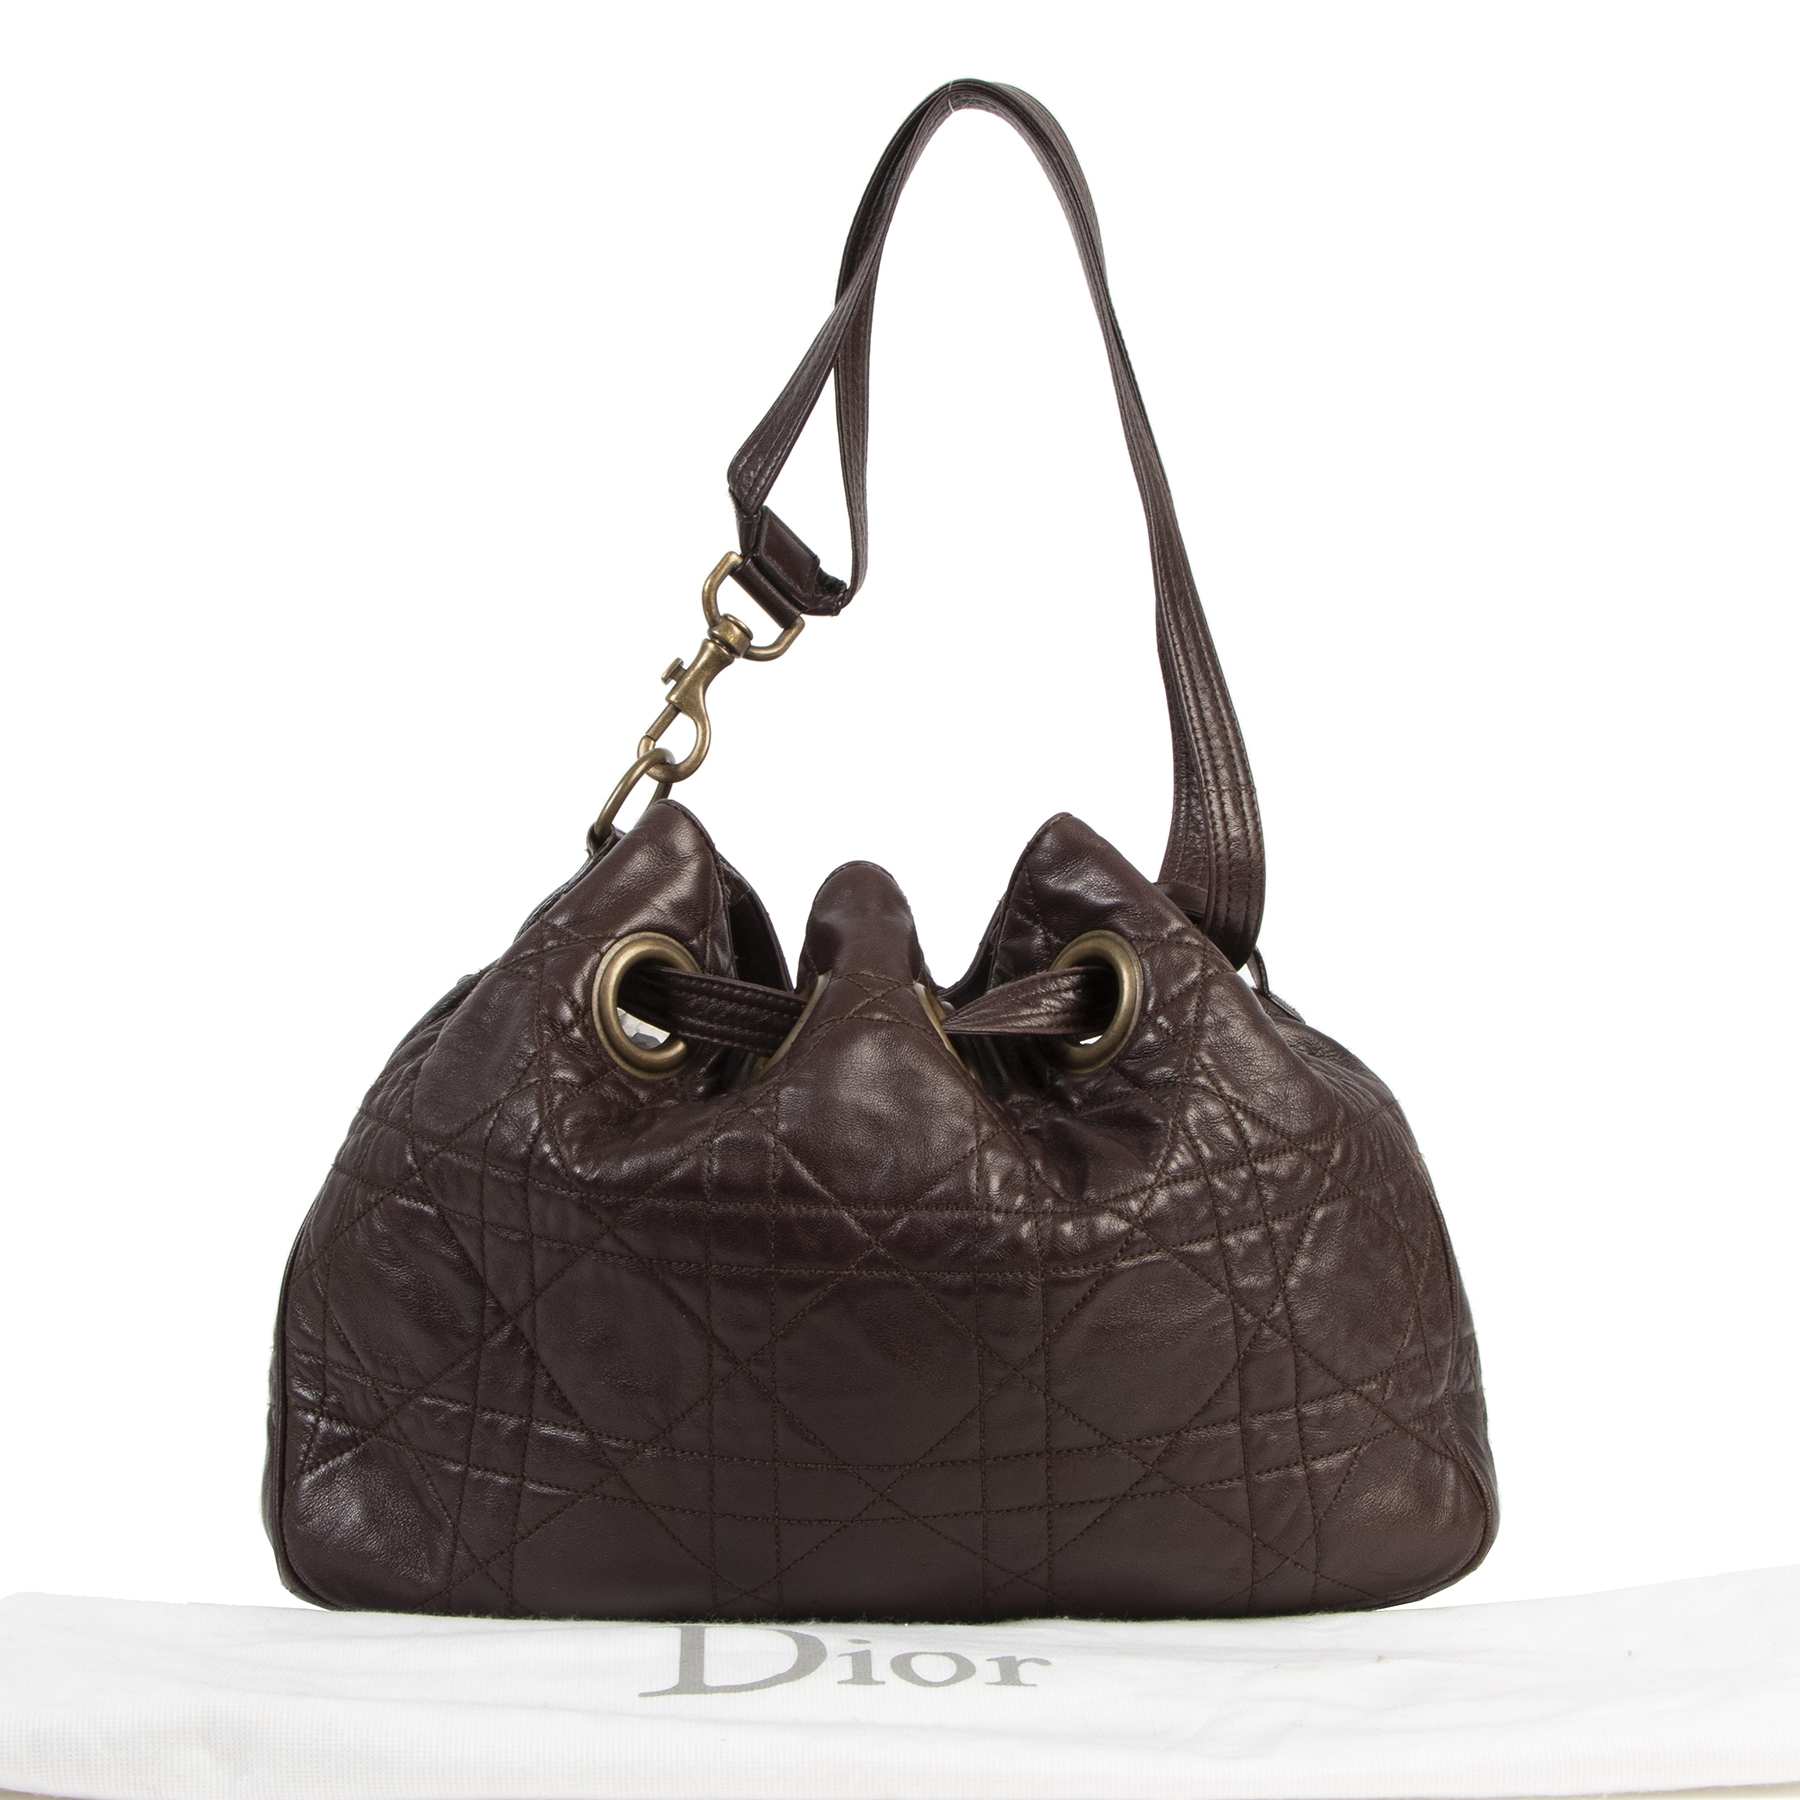 Authentique seconde-main vintage Christian Dior Dark Brown Cannage Bucket Bag achète en ligne webshop LabelLOV Belgique